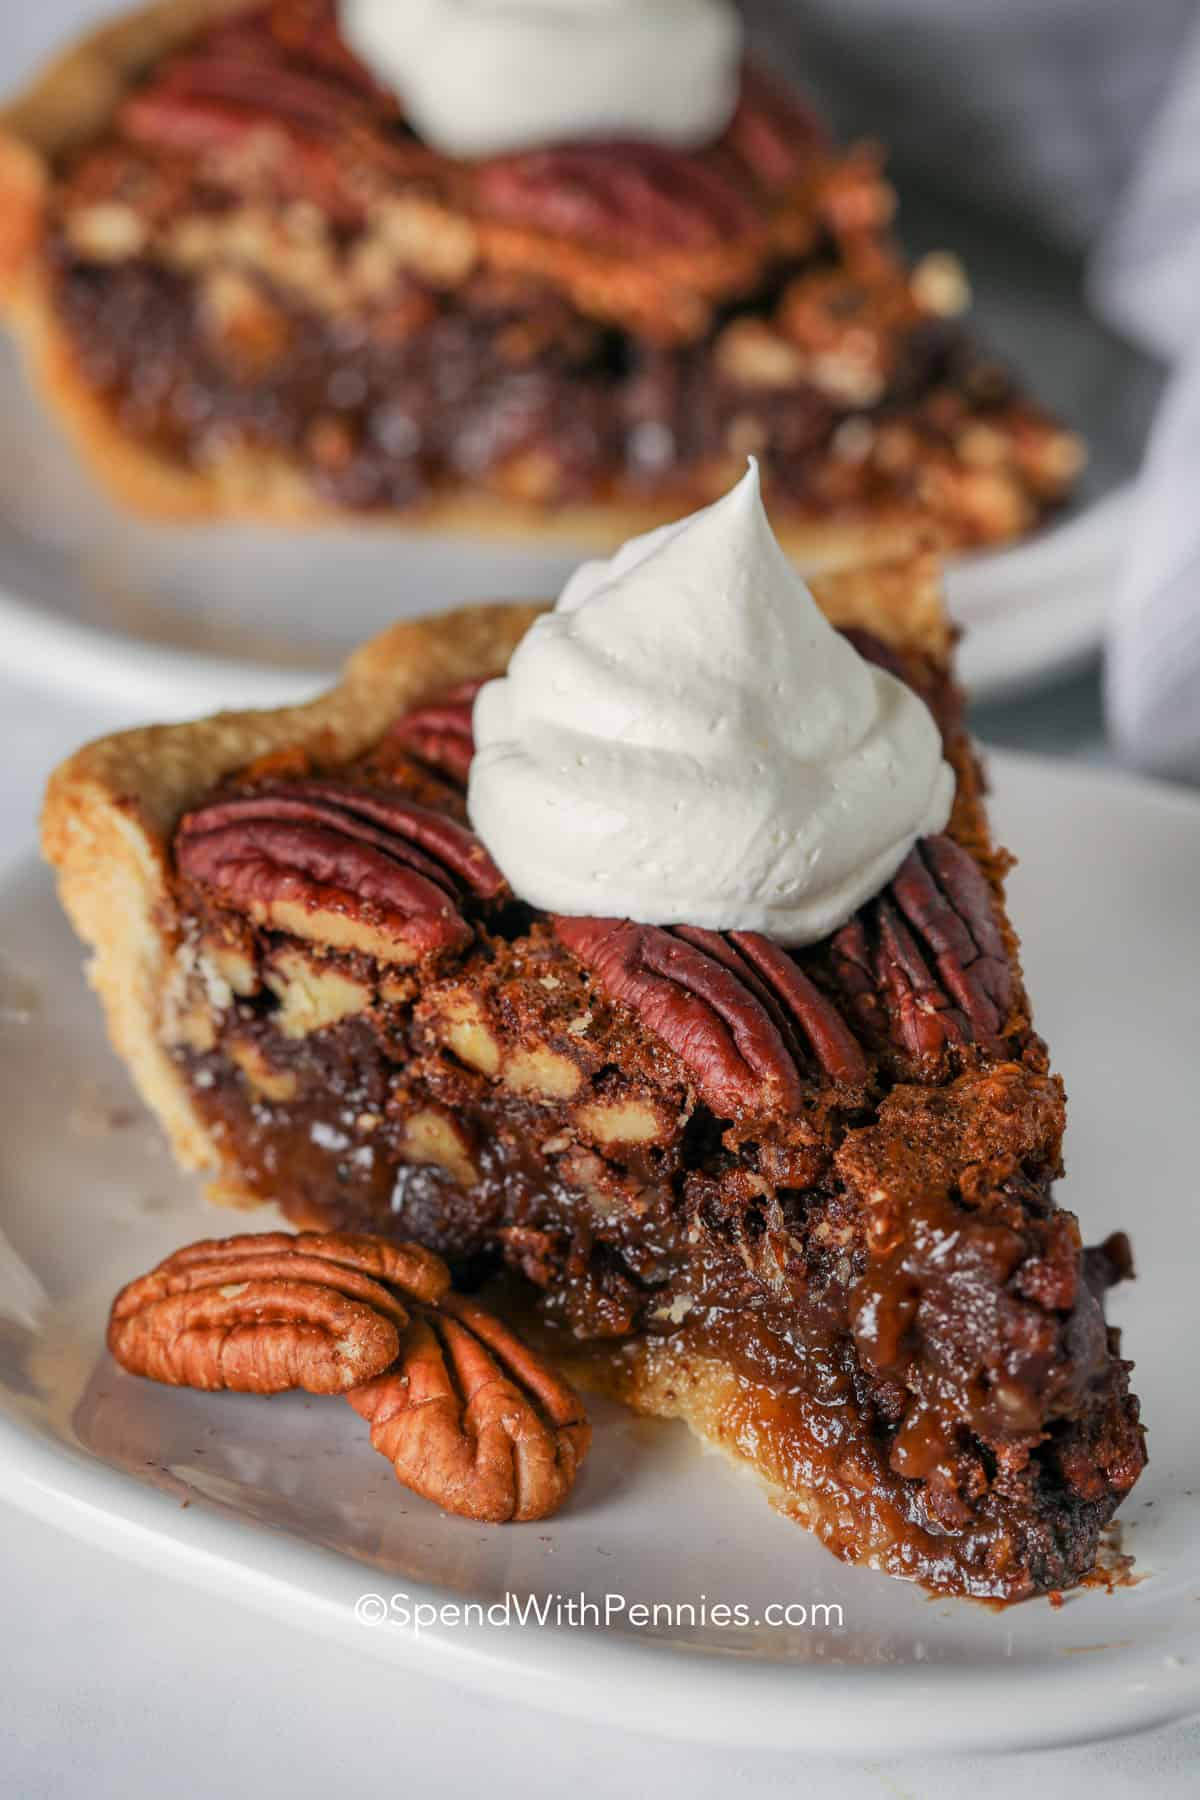 Chocolate Pecan Pie with whipped cream